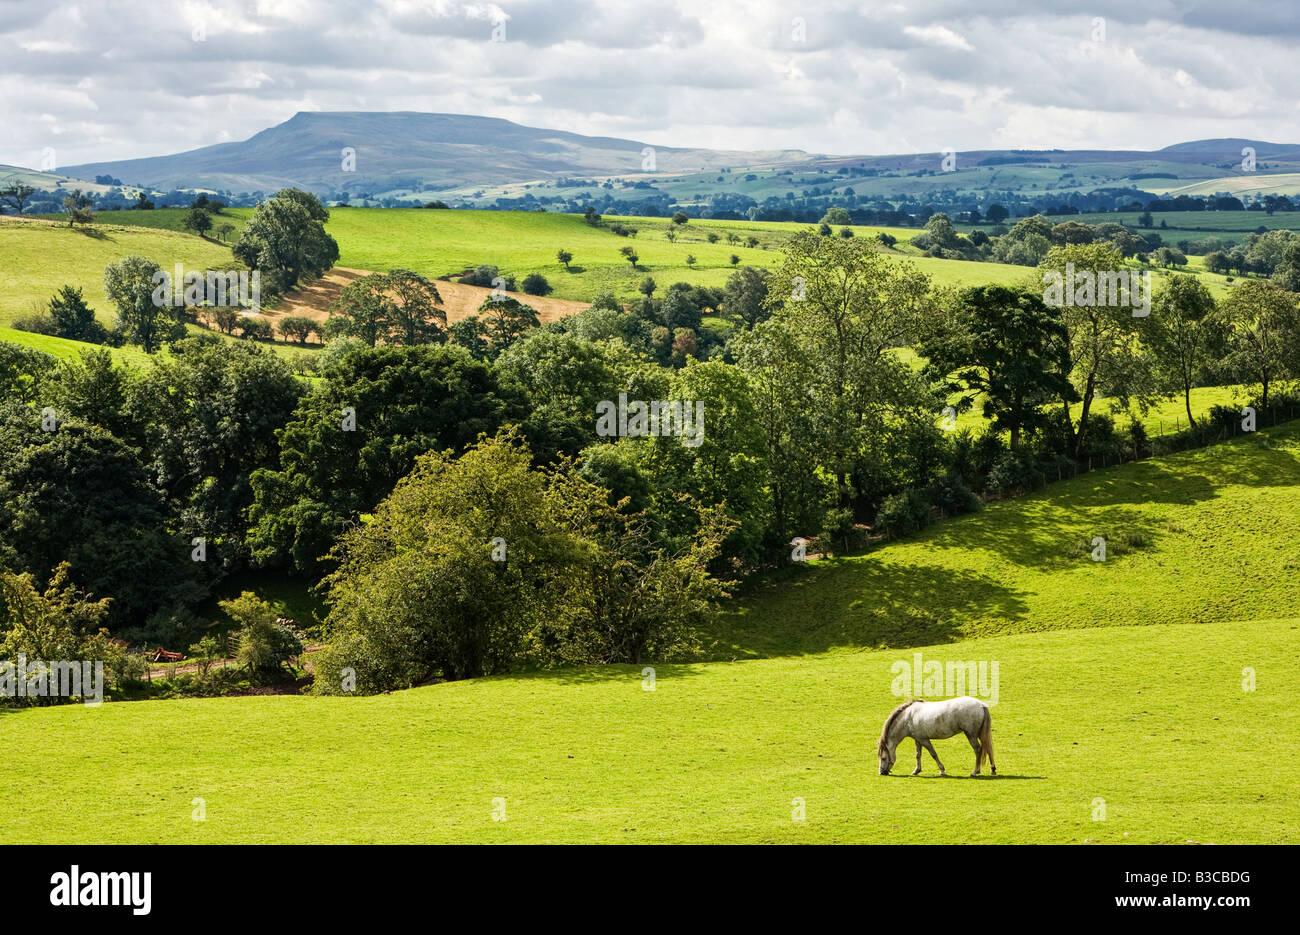 Teesdale countryside looking towards Pen y Ghent, North Yorkshire, England, UK - Stock Image